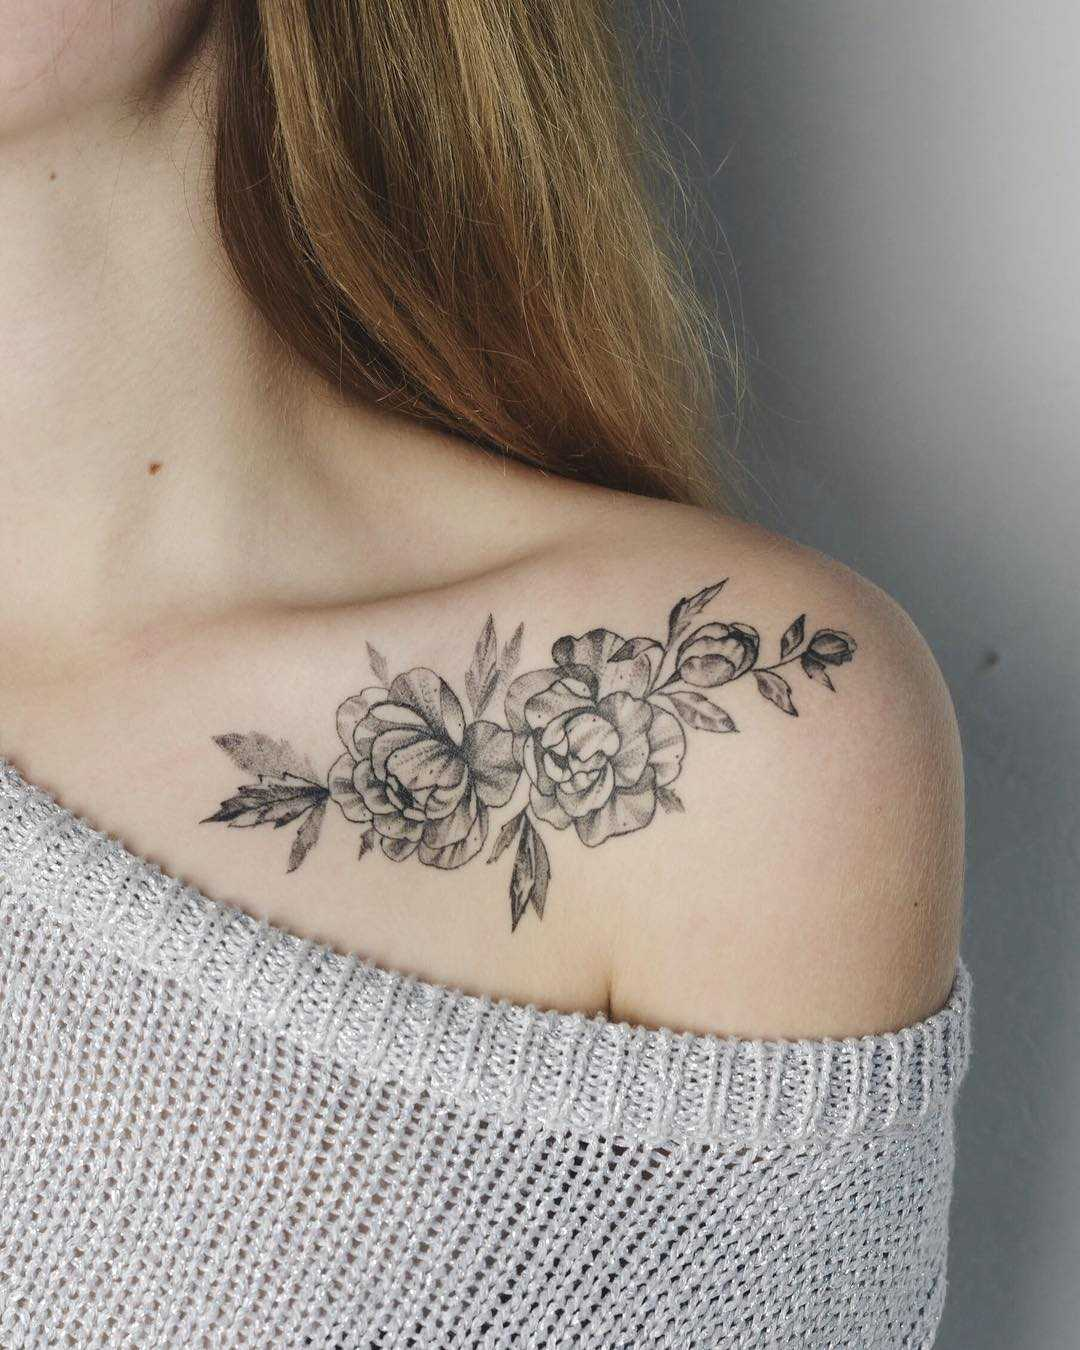 Floral Tattoo On A Collarbone Tattoogridnet